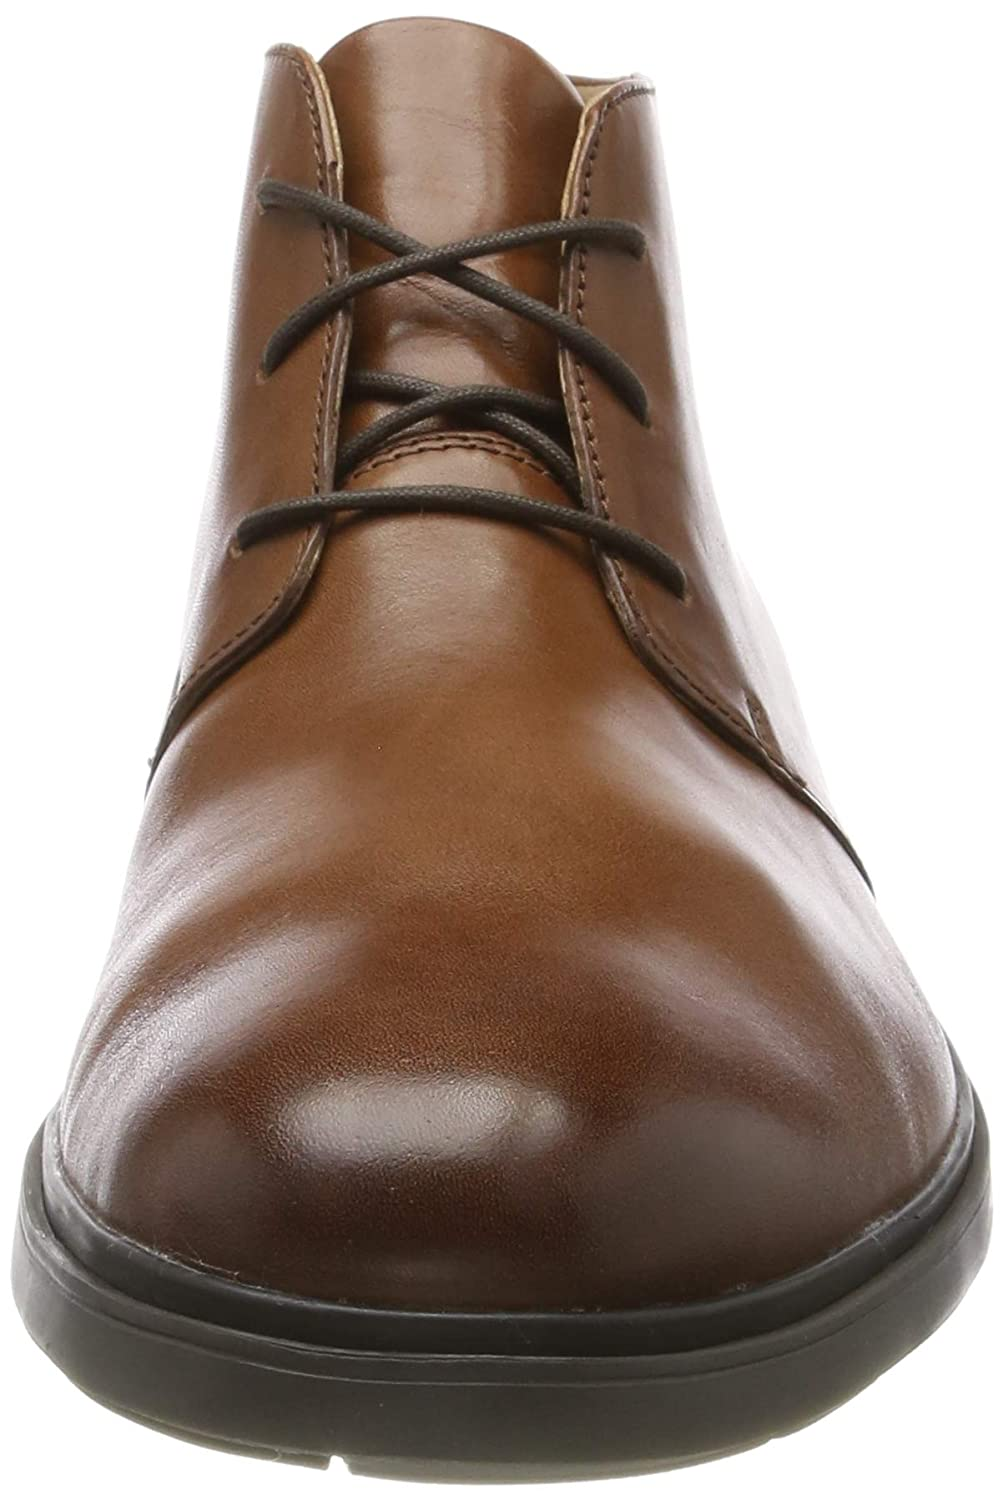 46 EU Botas Chukka para Hombre Tan Leather Tan Leather Marr/ón Clarks Un Tailor Mid